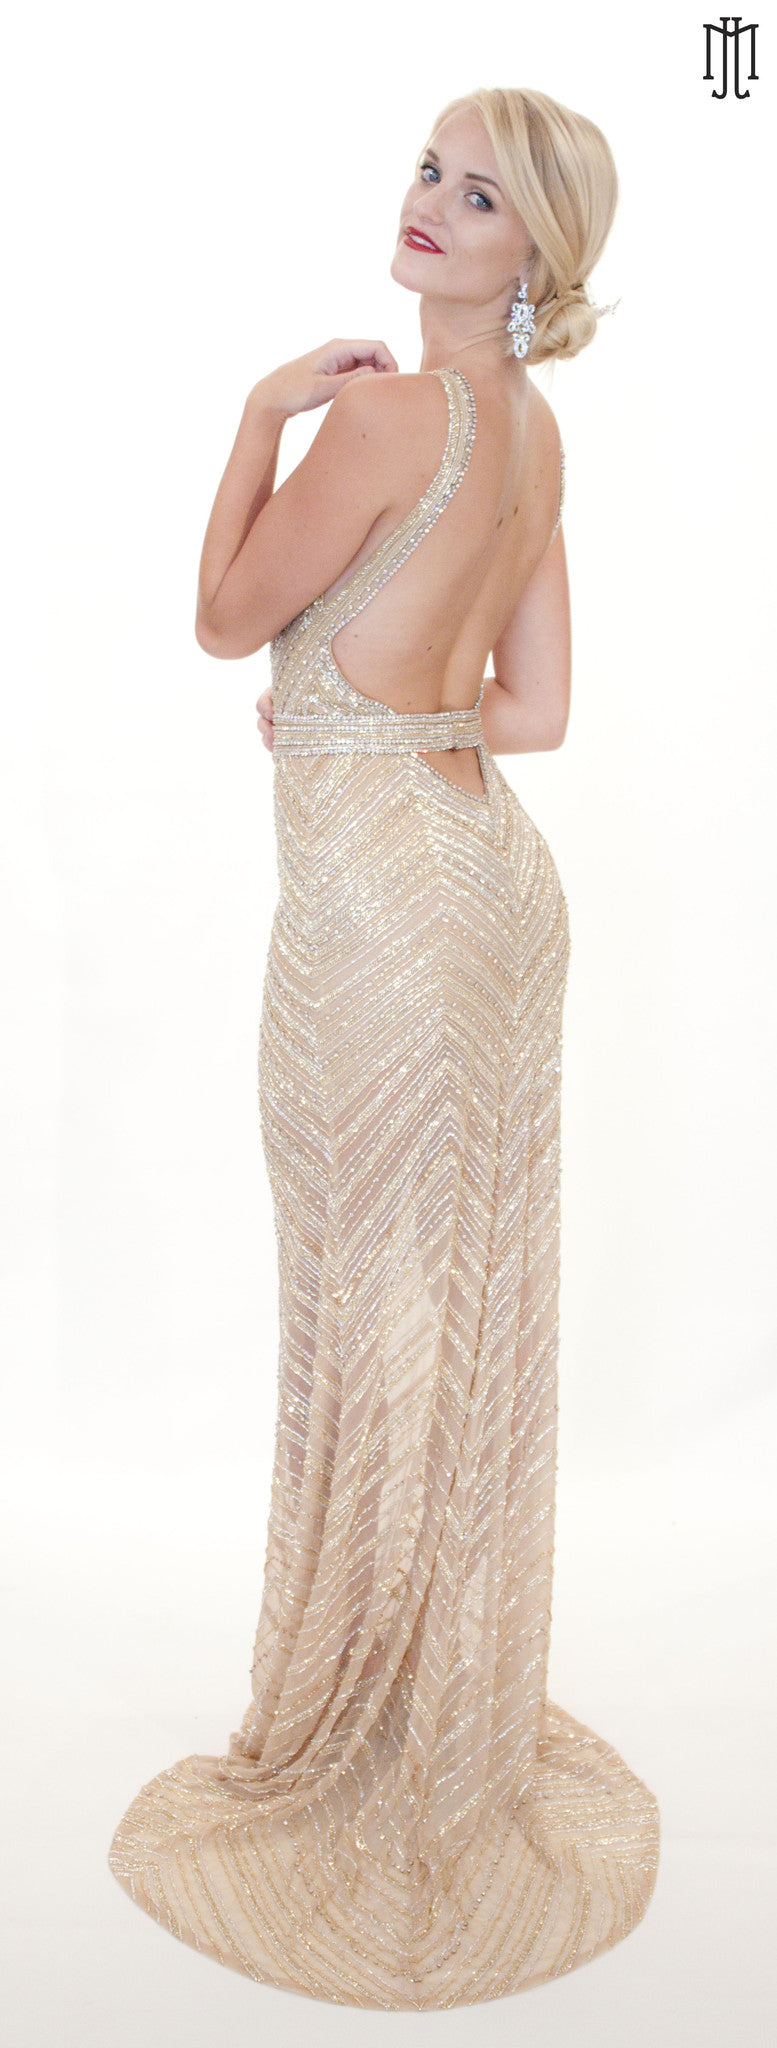 84ae3ec4eee Miss florida USA evening gown · Jovani Couture 39202 · Jovani Couture 39202